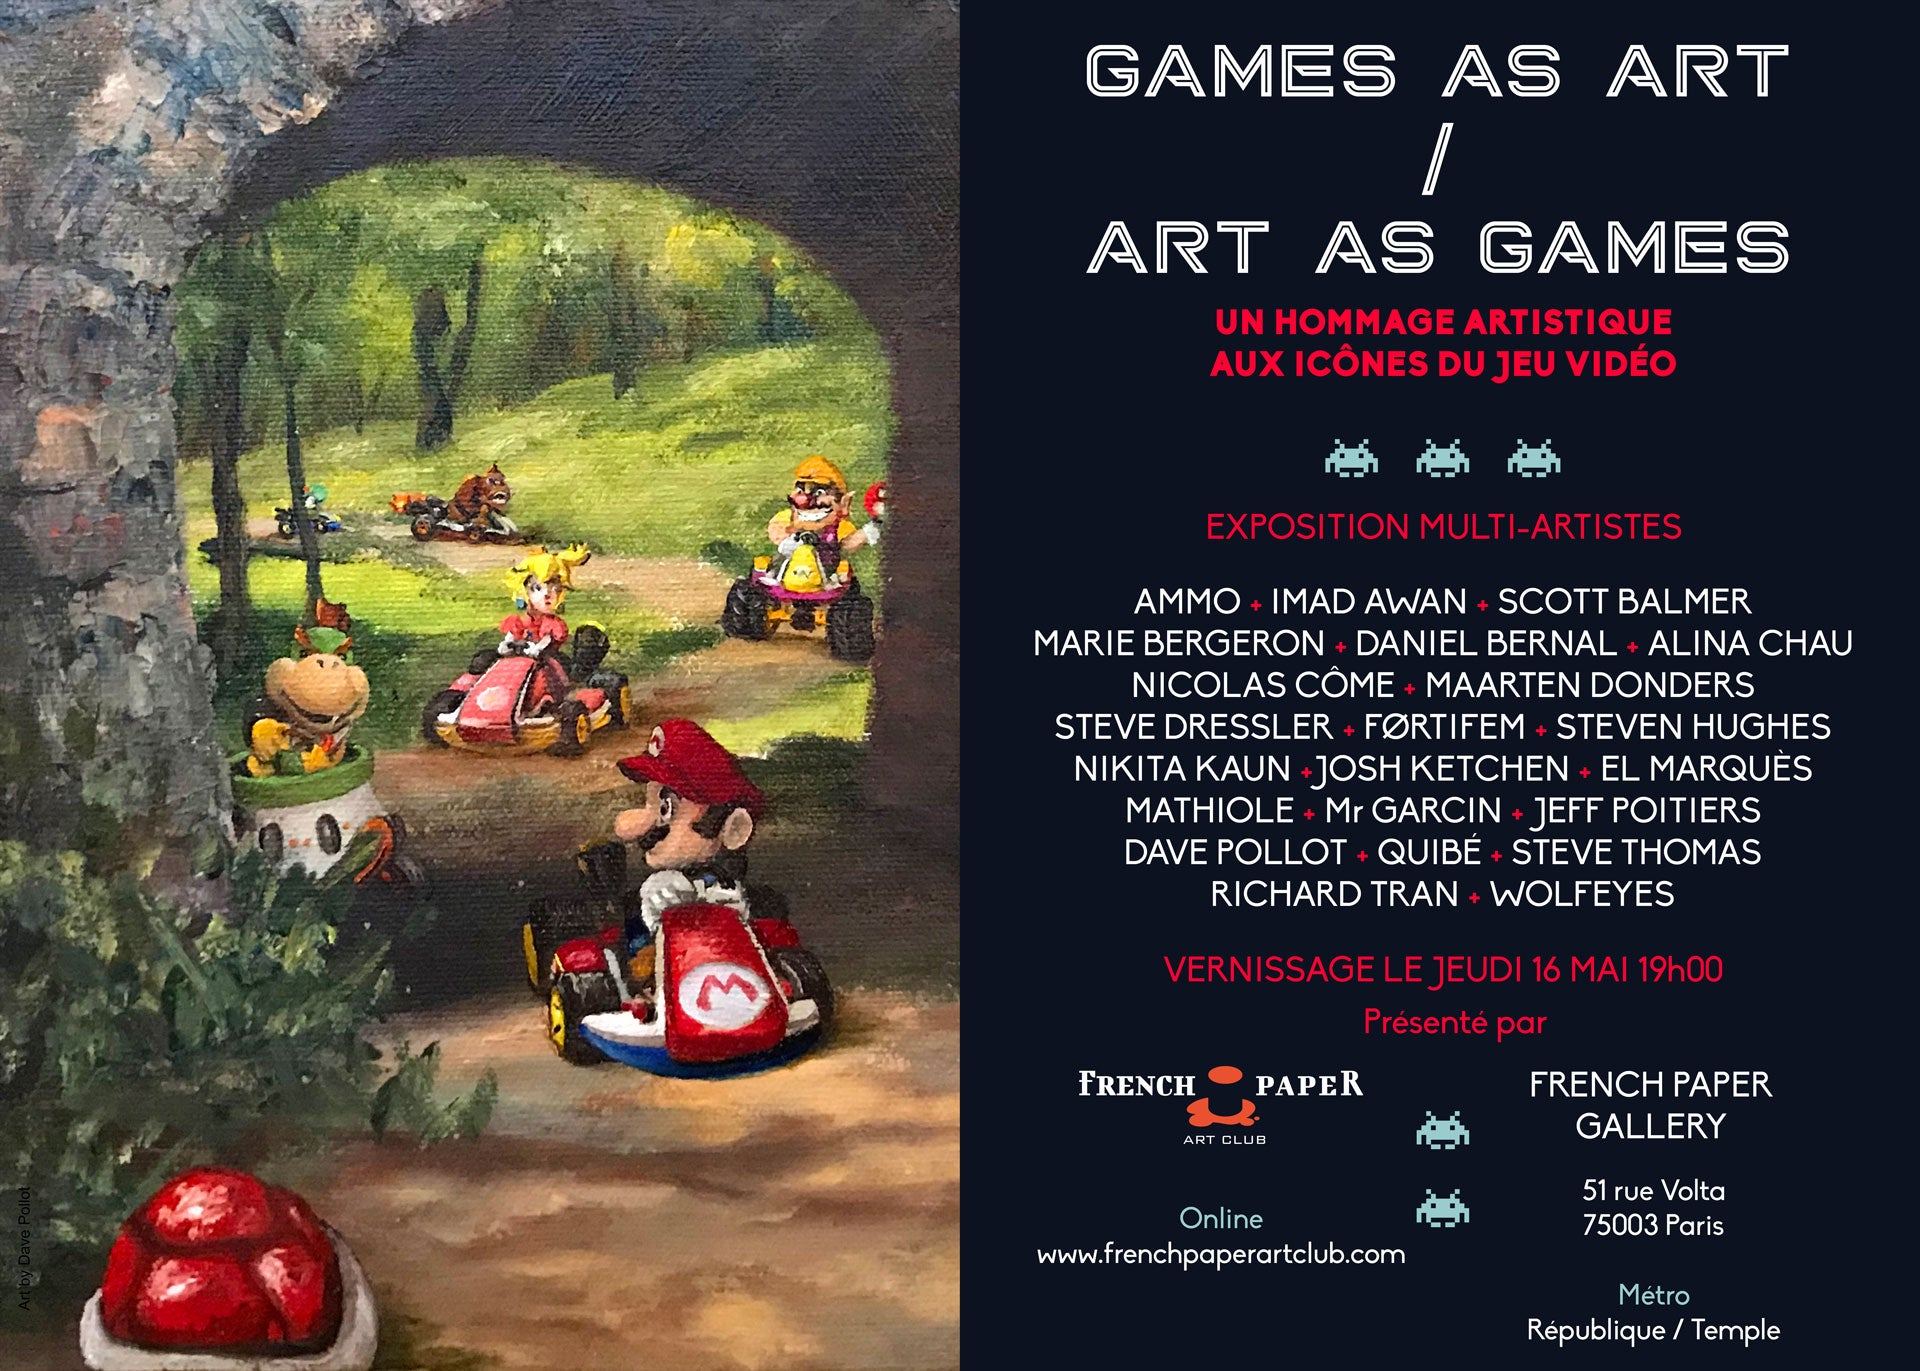 Exposition: Games as Art - Art as Games